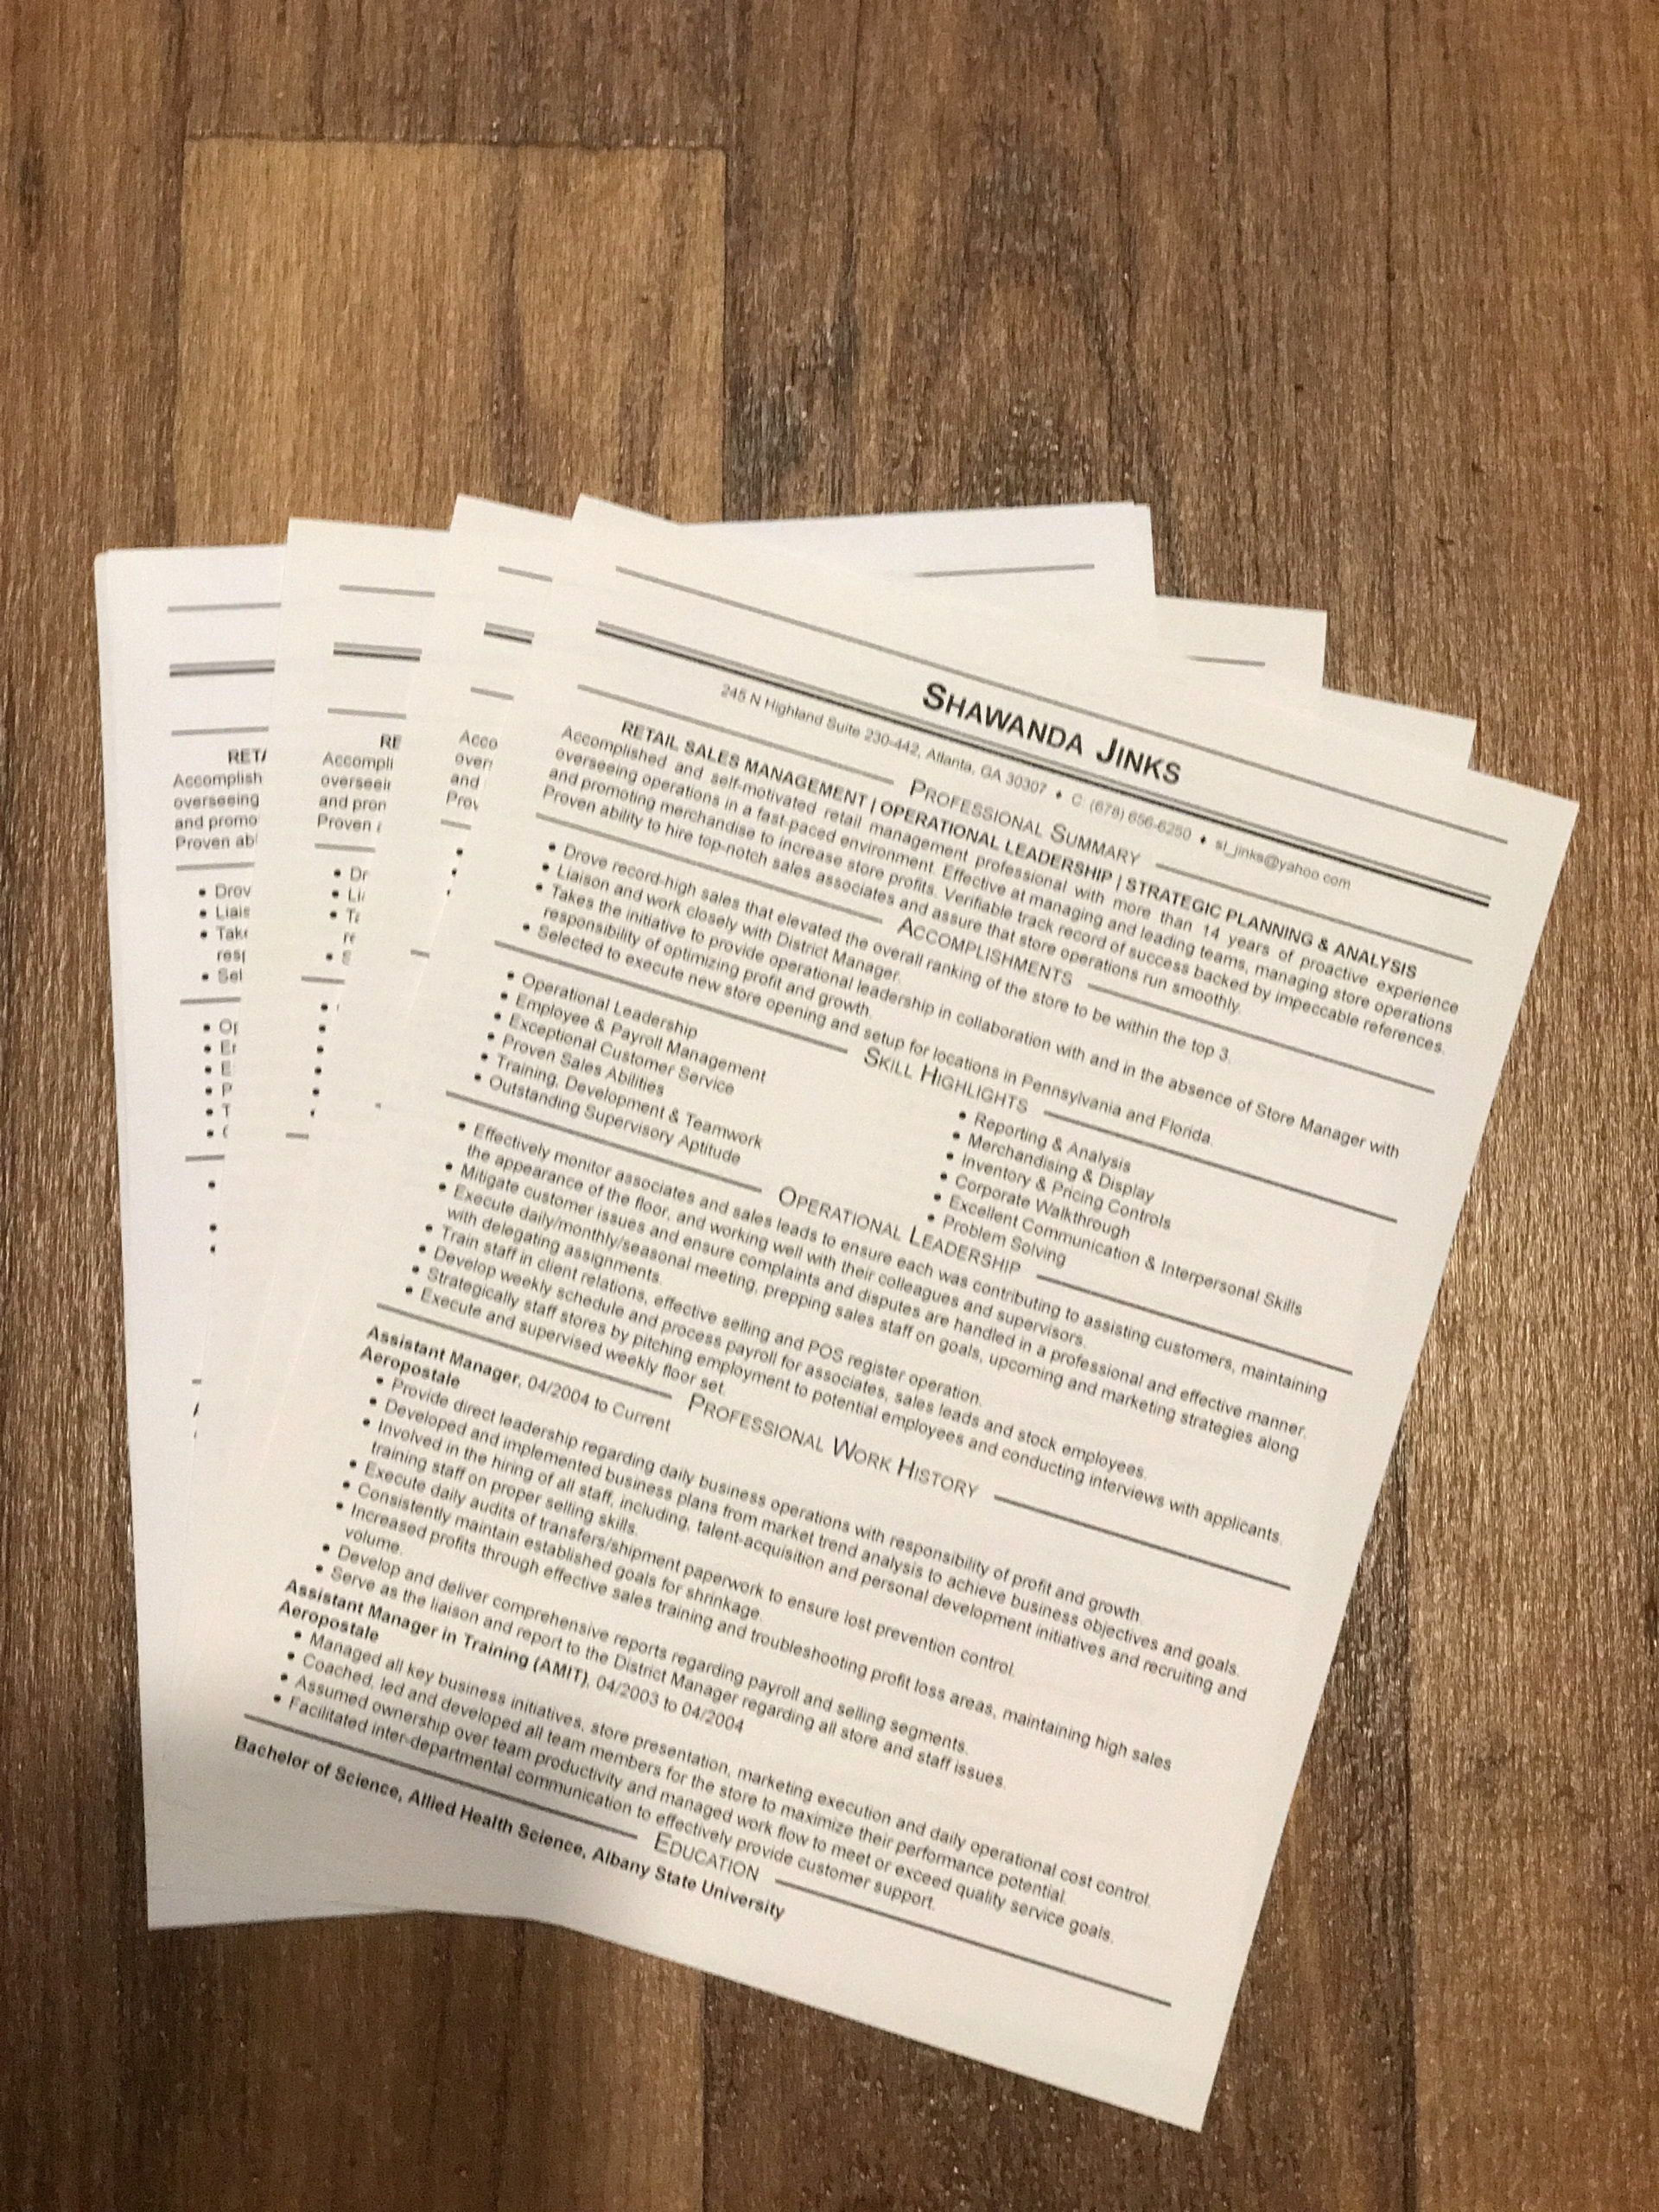 Hard Copies of Resume/Document(s)